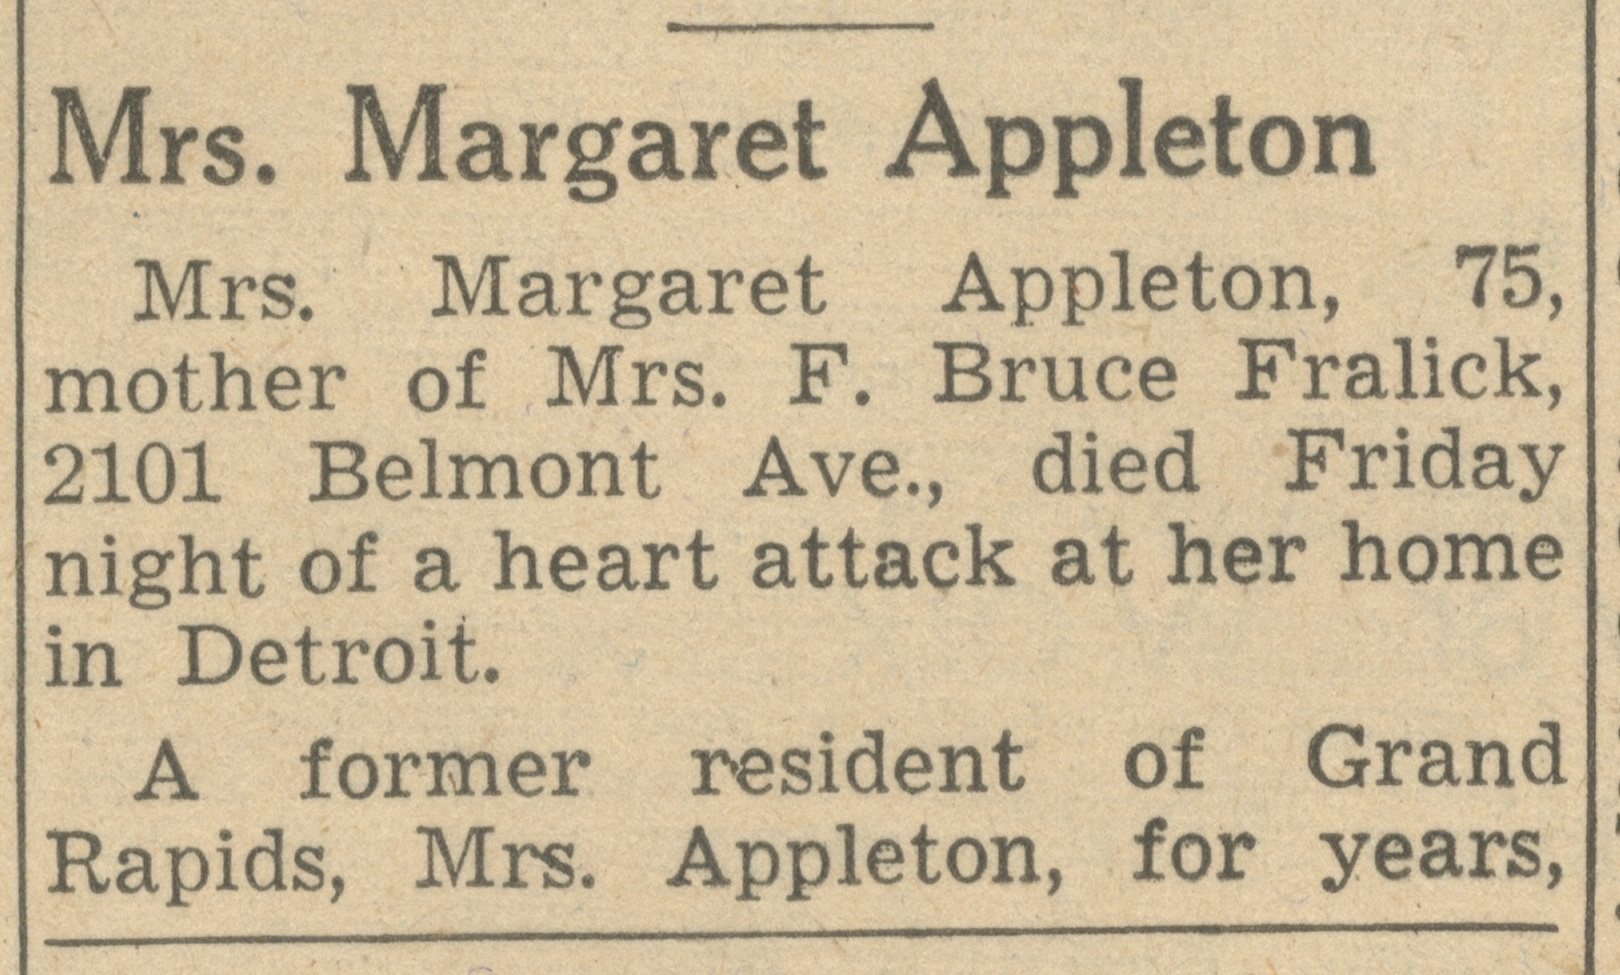 Mrs. Margaret Appleton image